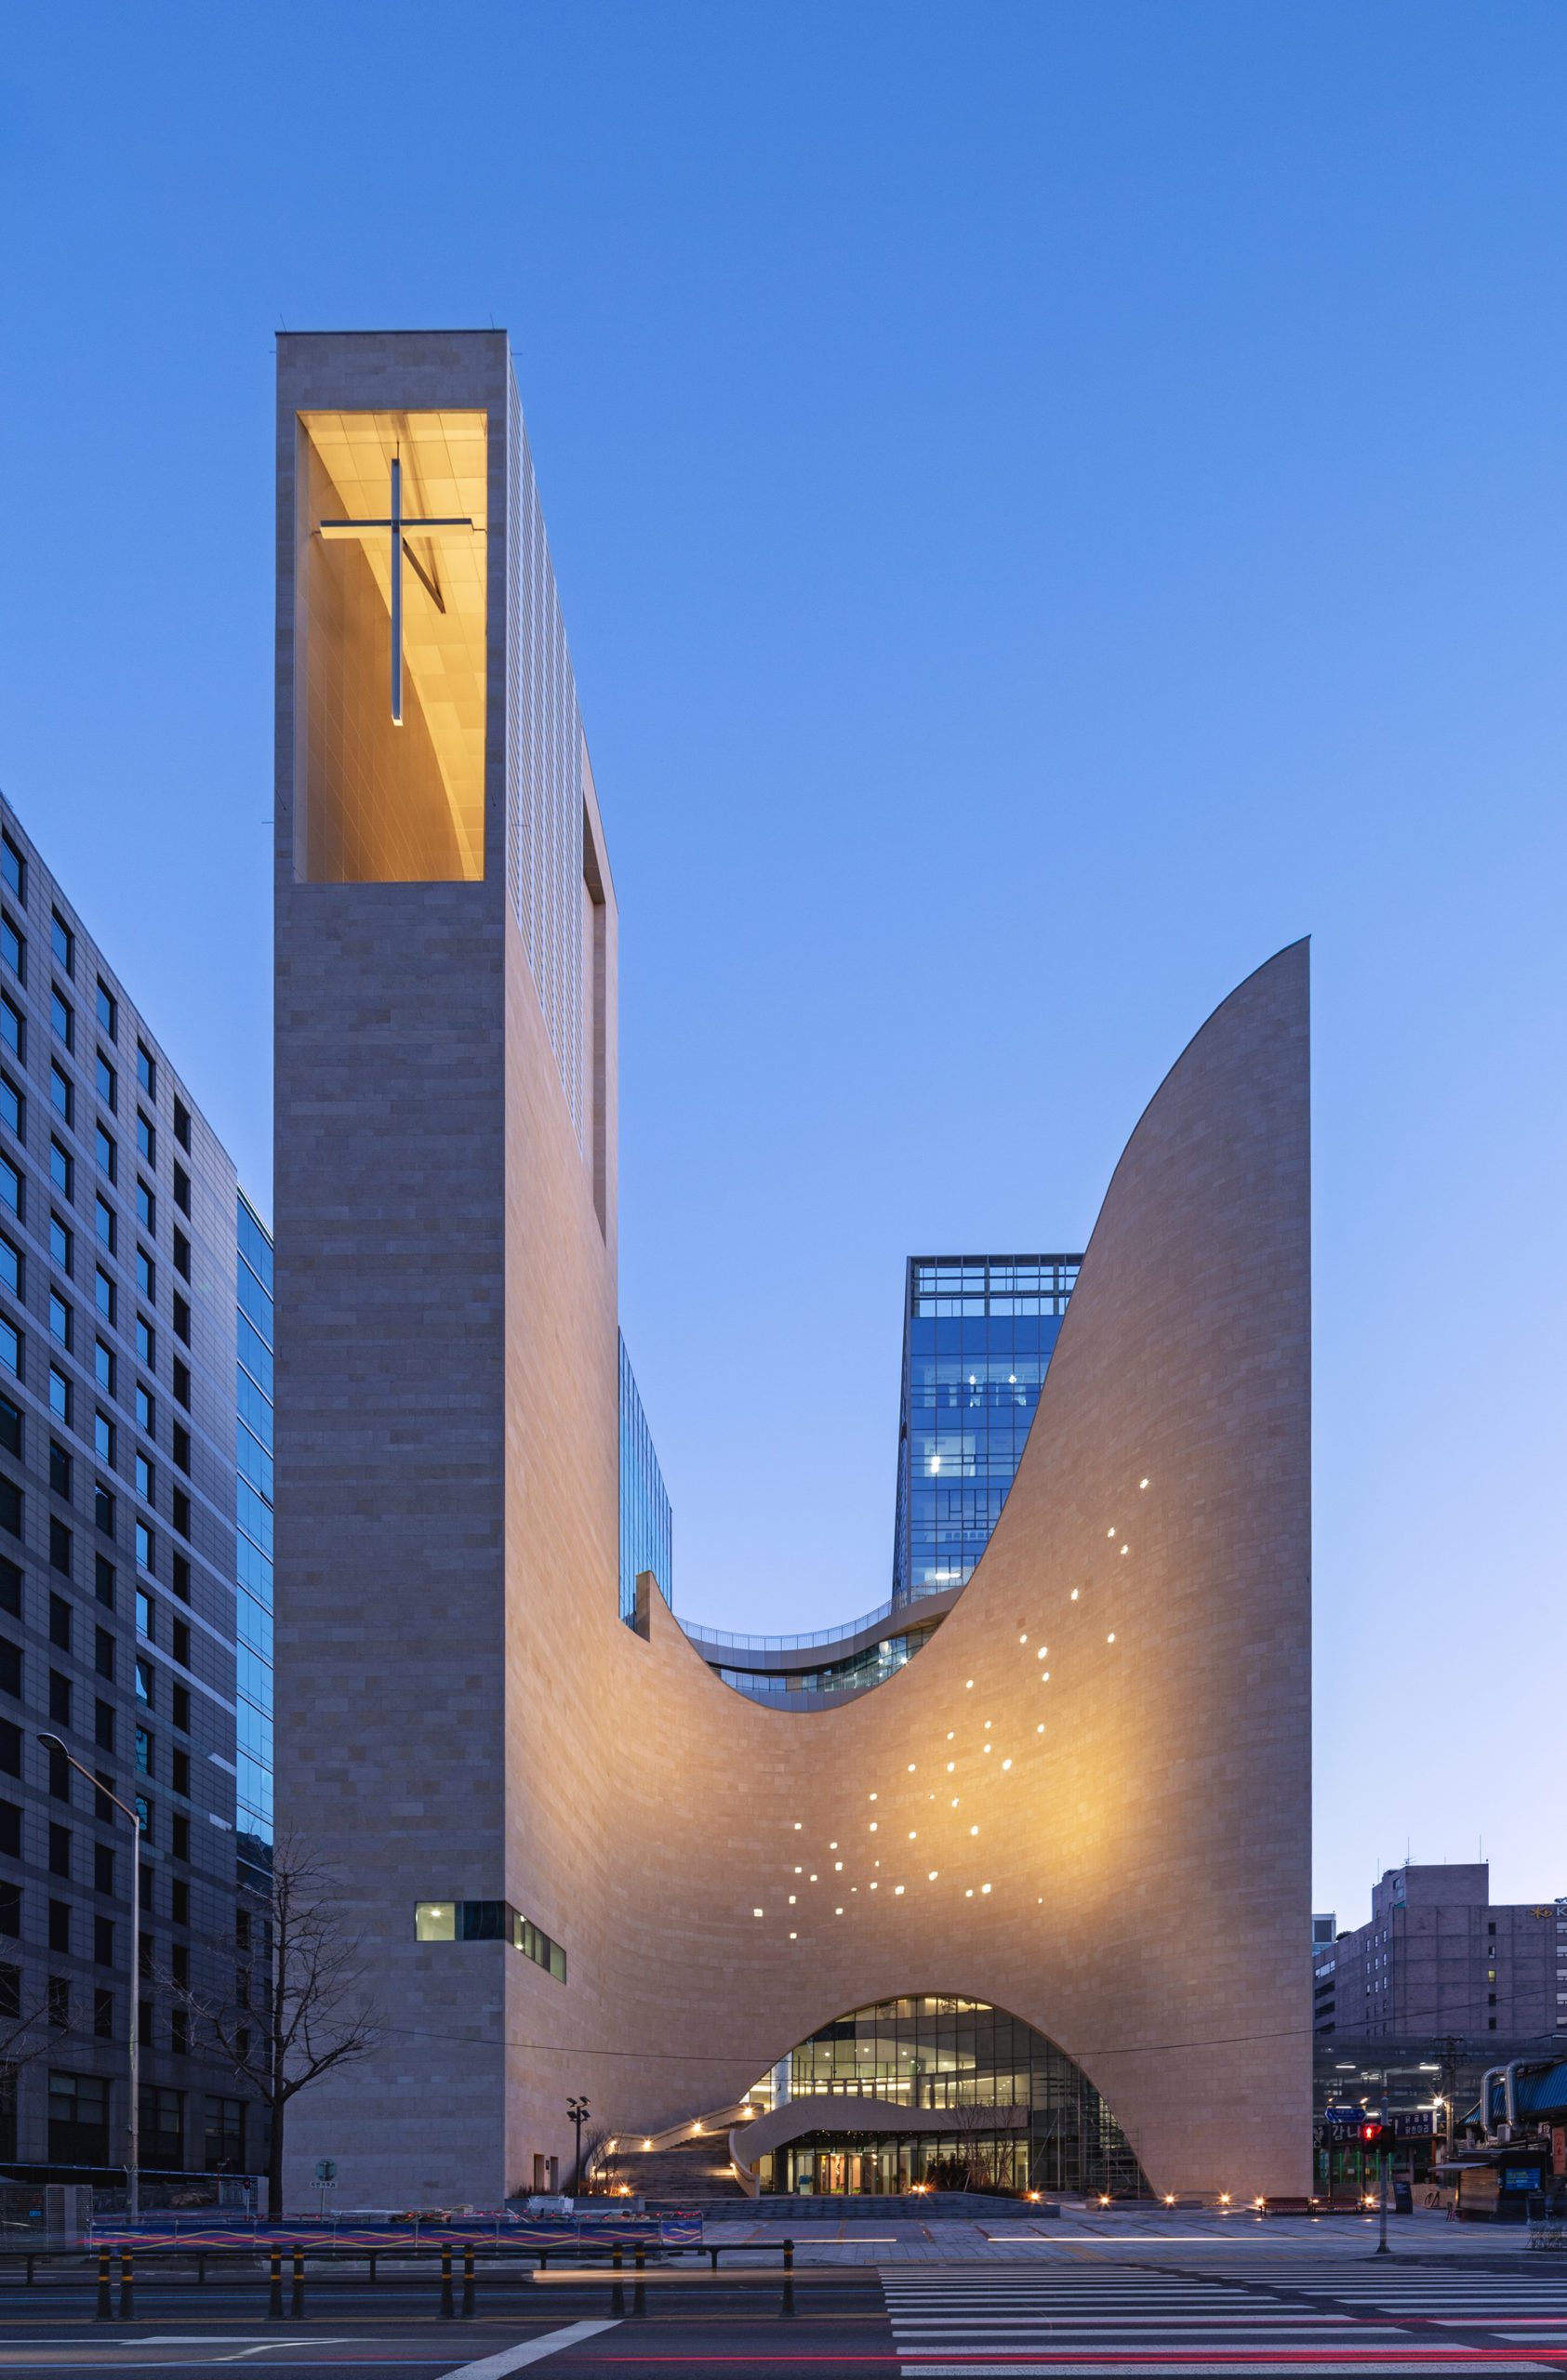 This concave roofline is a symbolic reach towards the heavens and gesture of open-armed embrace